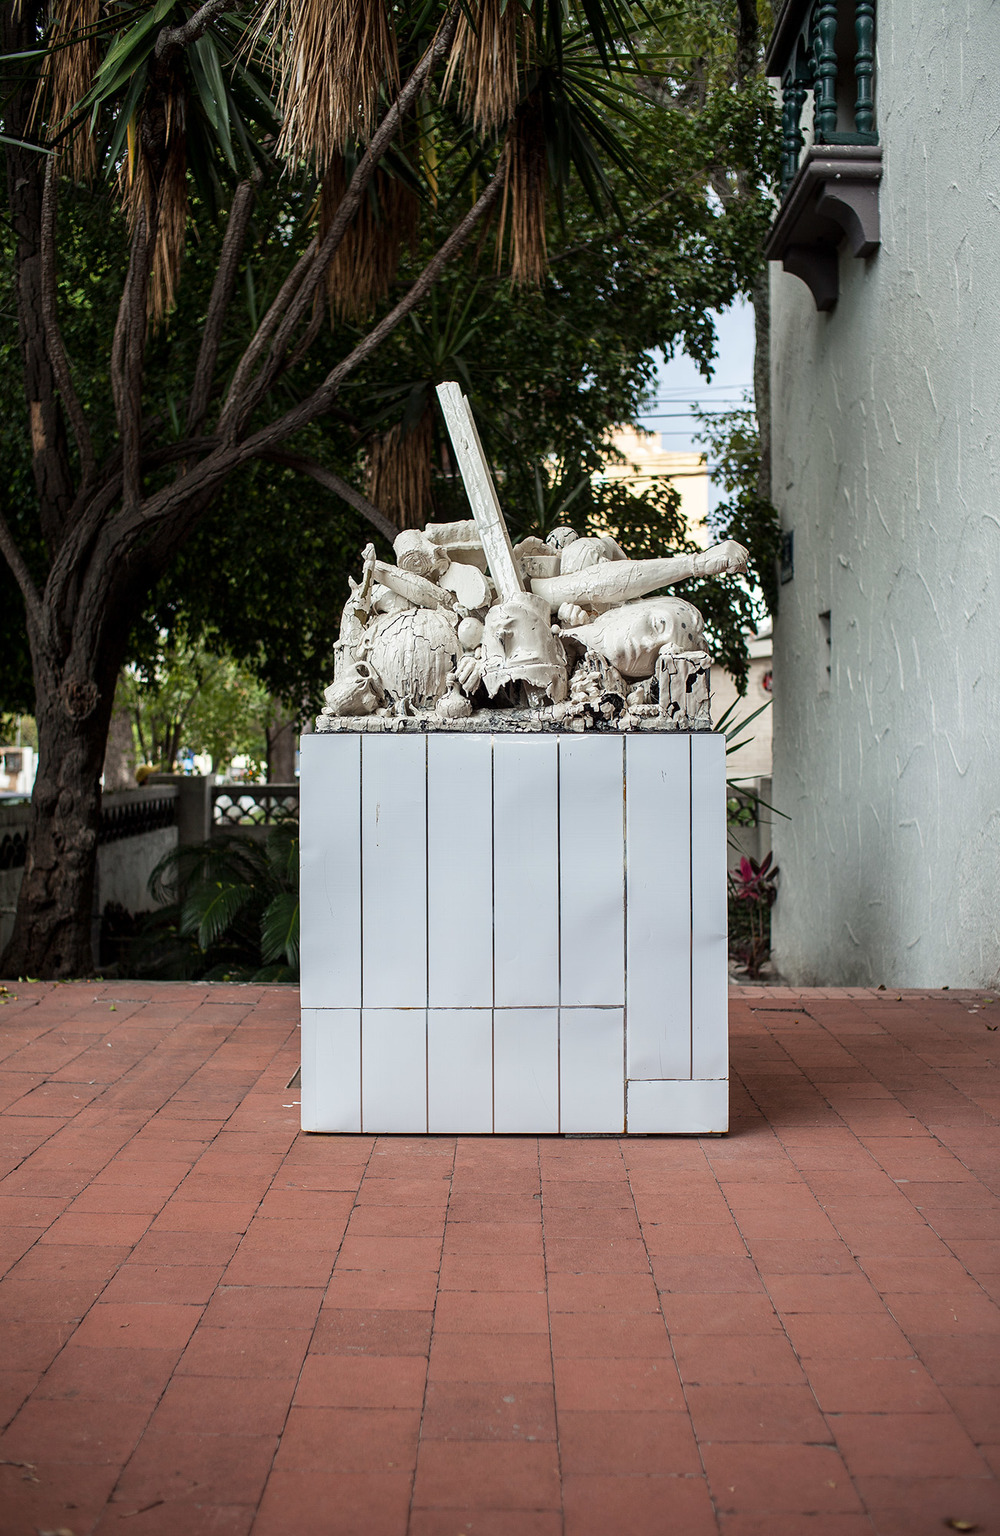 Los Payasos (February 17 – August 28, 2015: Cerámica Suro Contemporánea, Guadalajara, Jalisco, Mexico)    2015   Ceramica Suro slip cast remnants, glaze, and firing plate  77 1/2 x 46 x 27 1/4 inches   Disponibles, 2015